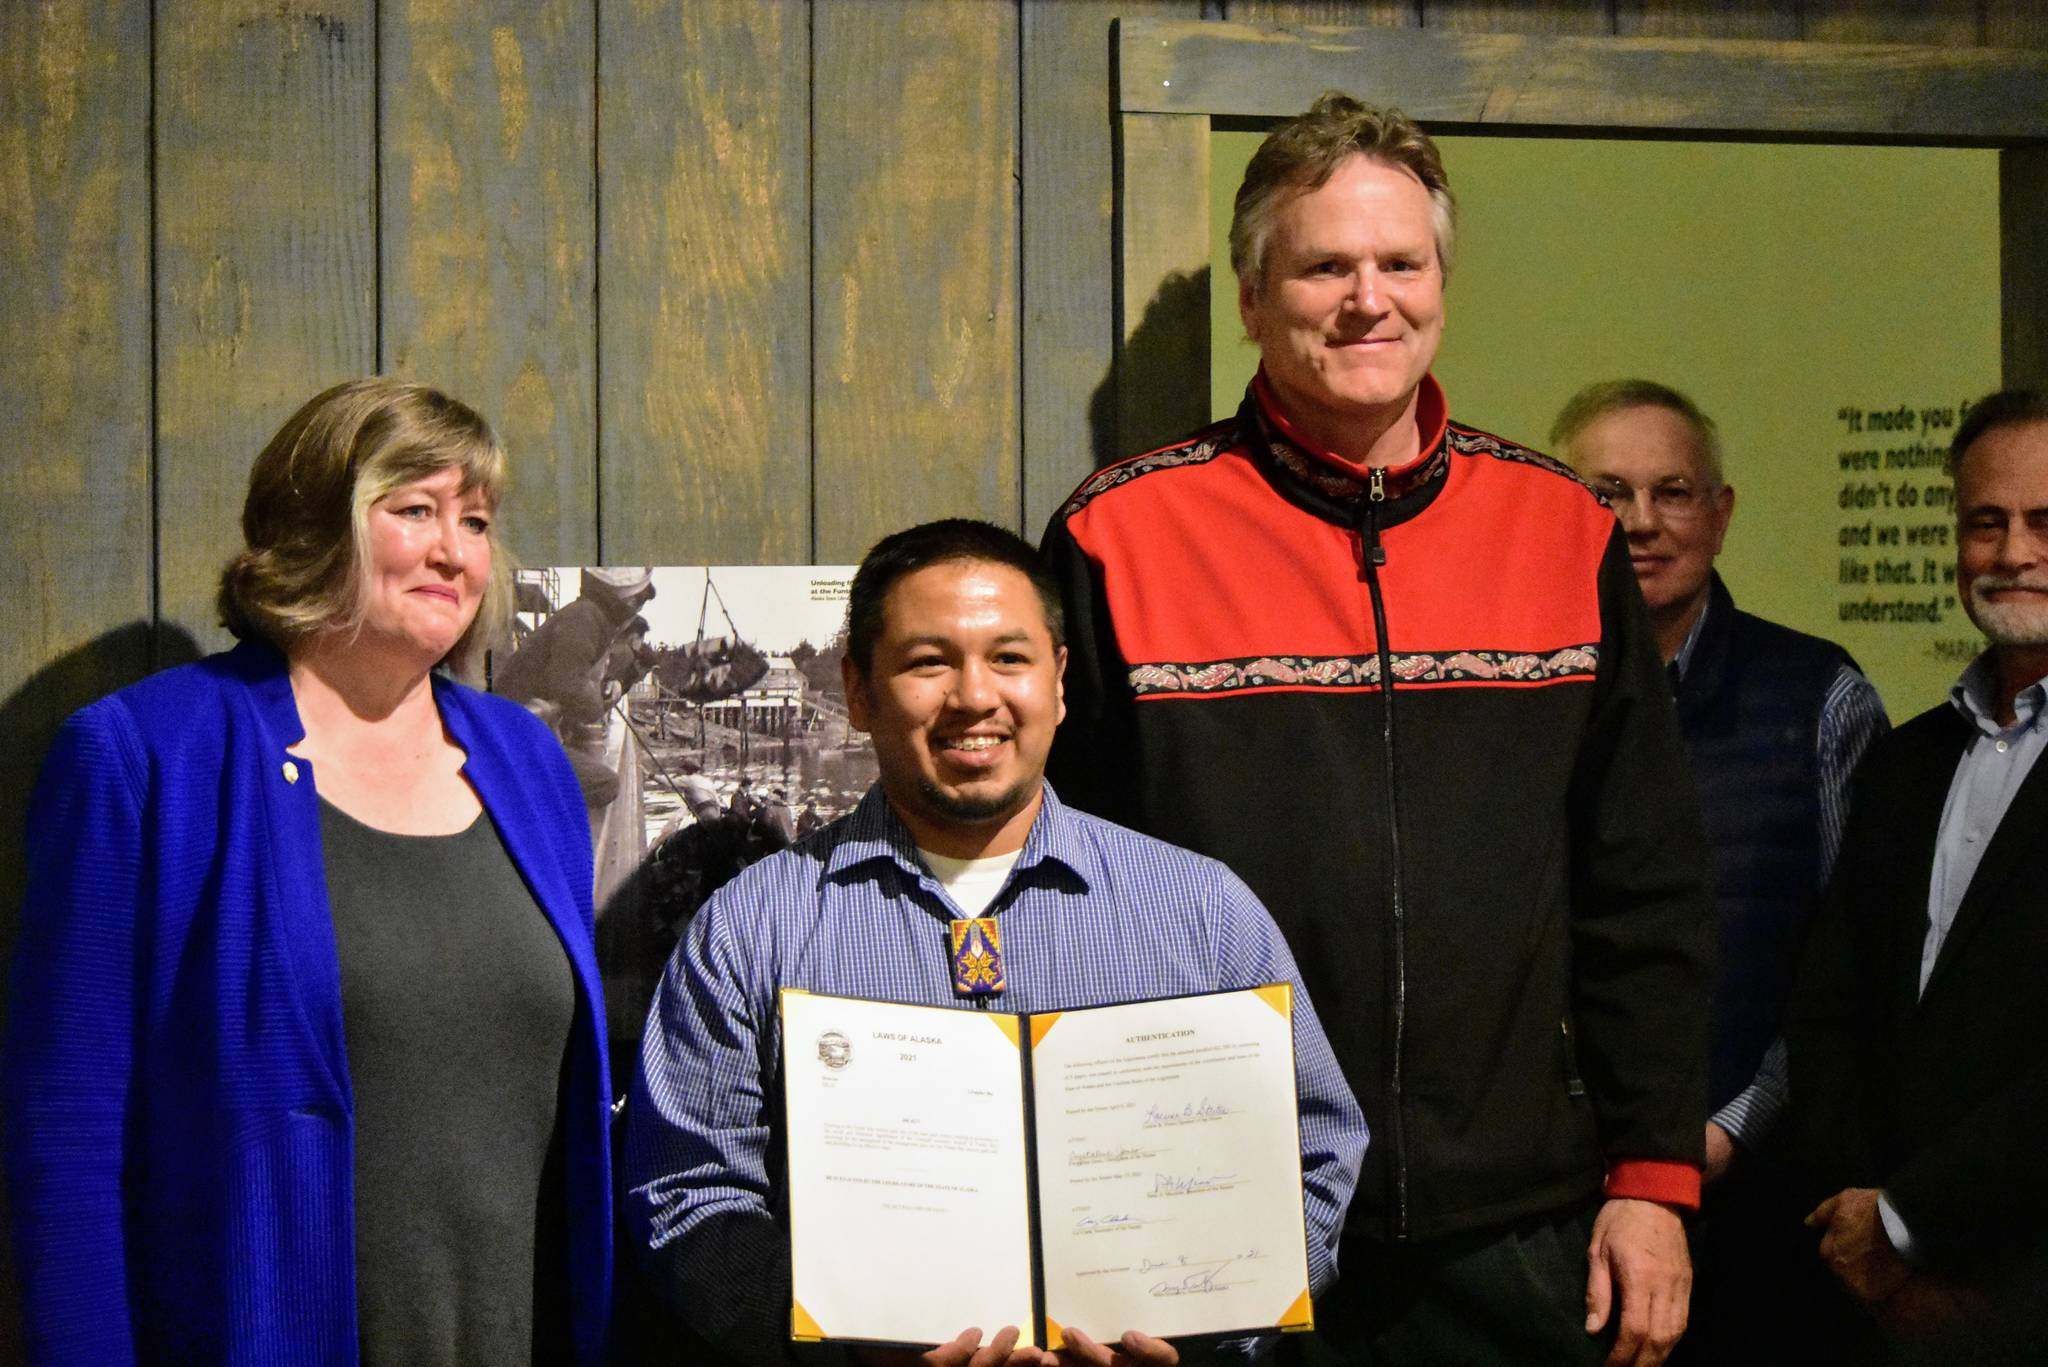 From left to right, Rep. Sara Hannan, D-Juneau; Martin Stepetin Sr. and Gov. Mike Dunleavy at a signing ceremony for a bill protecting a cemetery in Funter Bay at the Juneau-Douglas City Museum on Tuesday, June 8, 2021. (Peter Segall / Juneau Empire)